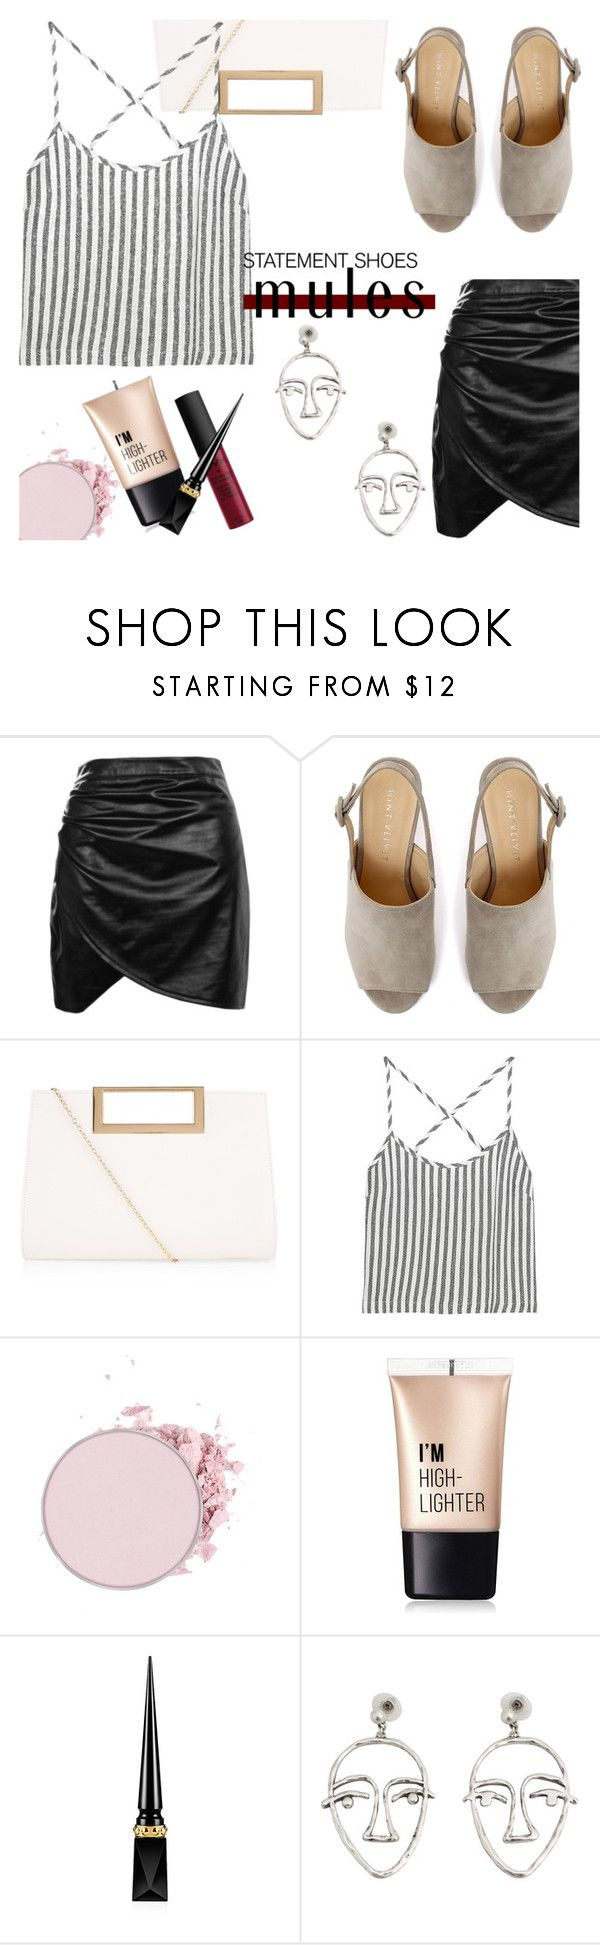 """""""statement shoes: mules"""" by lynksmichelle ❤ liked on Polyvore featuring Boohoo, Mint Velvet, New Look, Kain, Charlotte Russe, NYX, Christian Louboutin, MANGO, mules and women"""